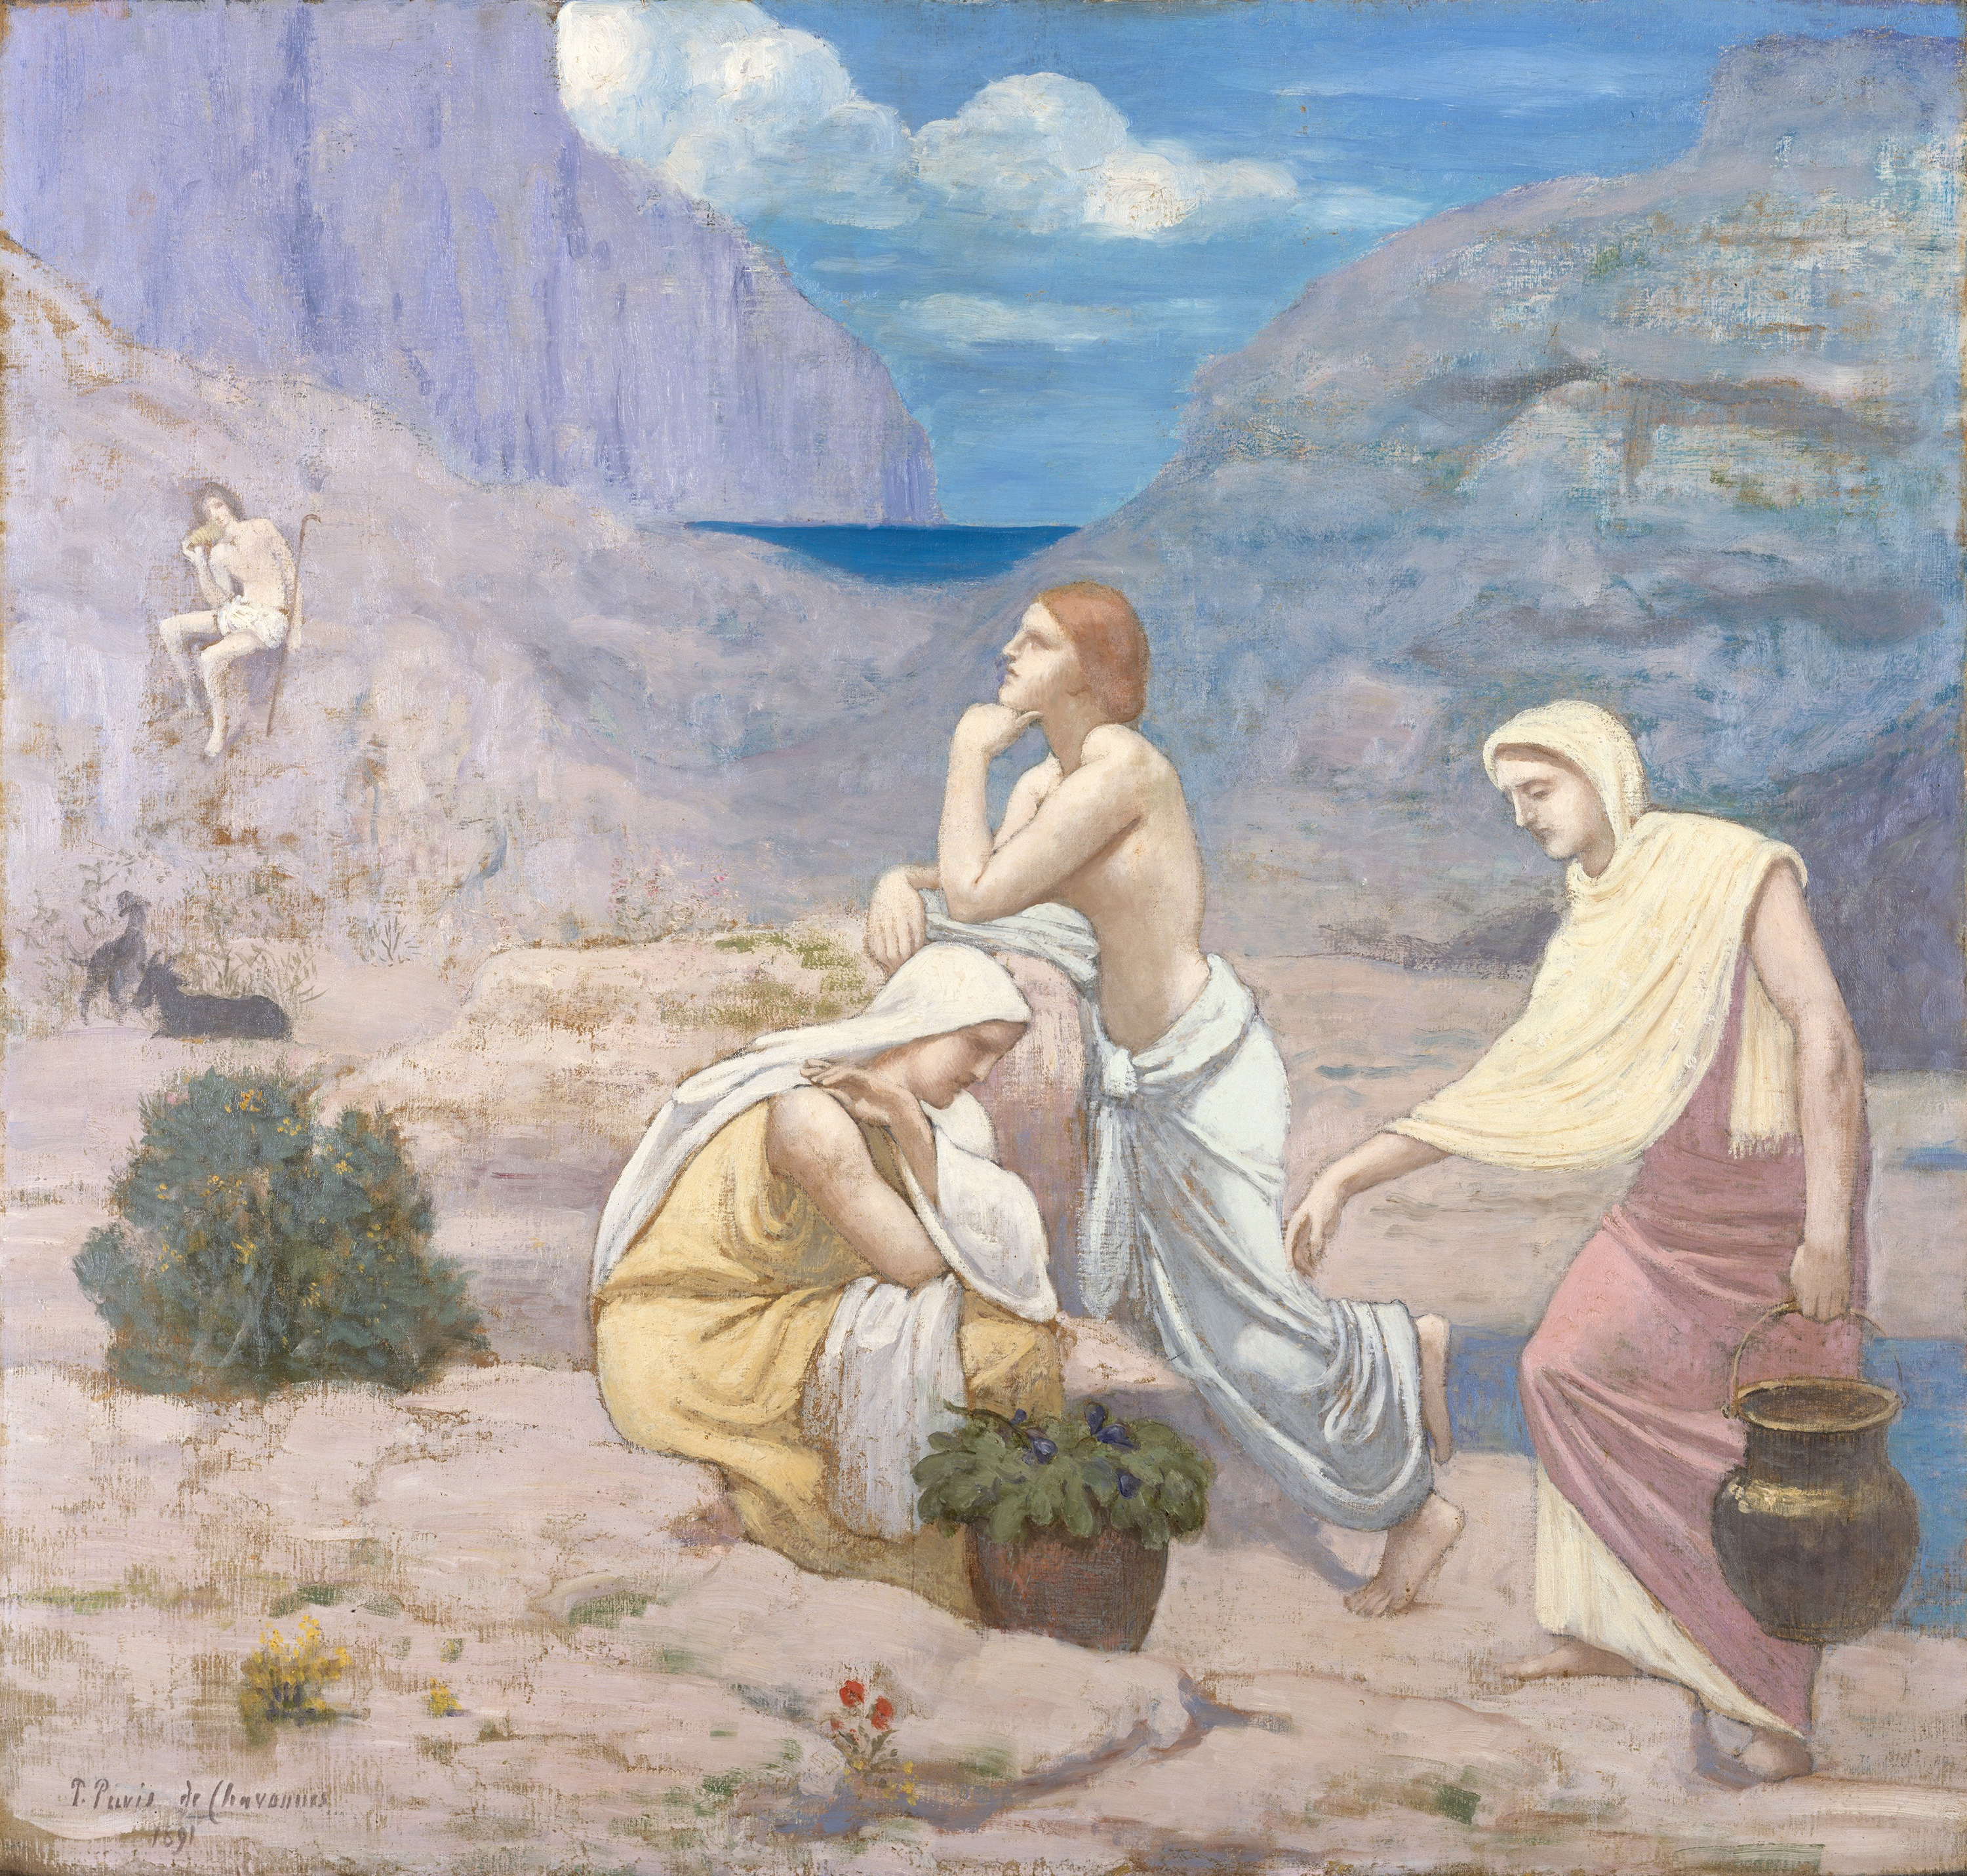 The Shepherd's Song, 1891 — Pierre Puvis de Chavannes